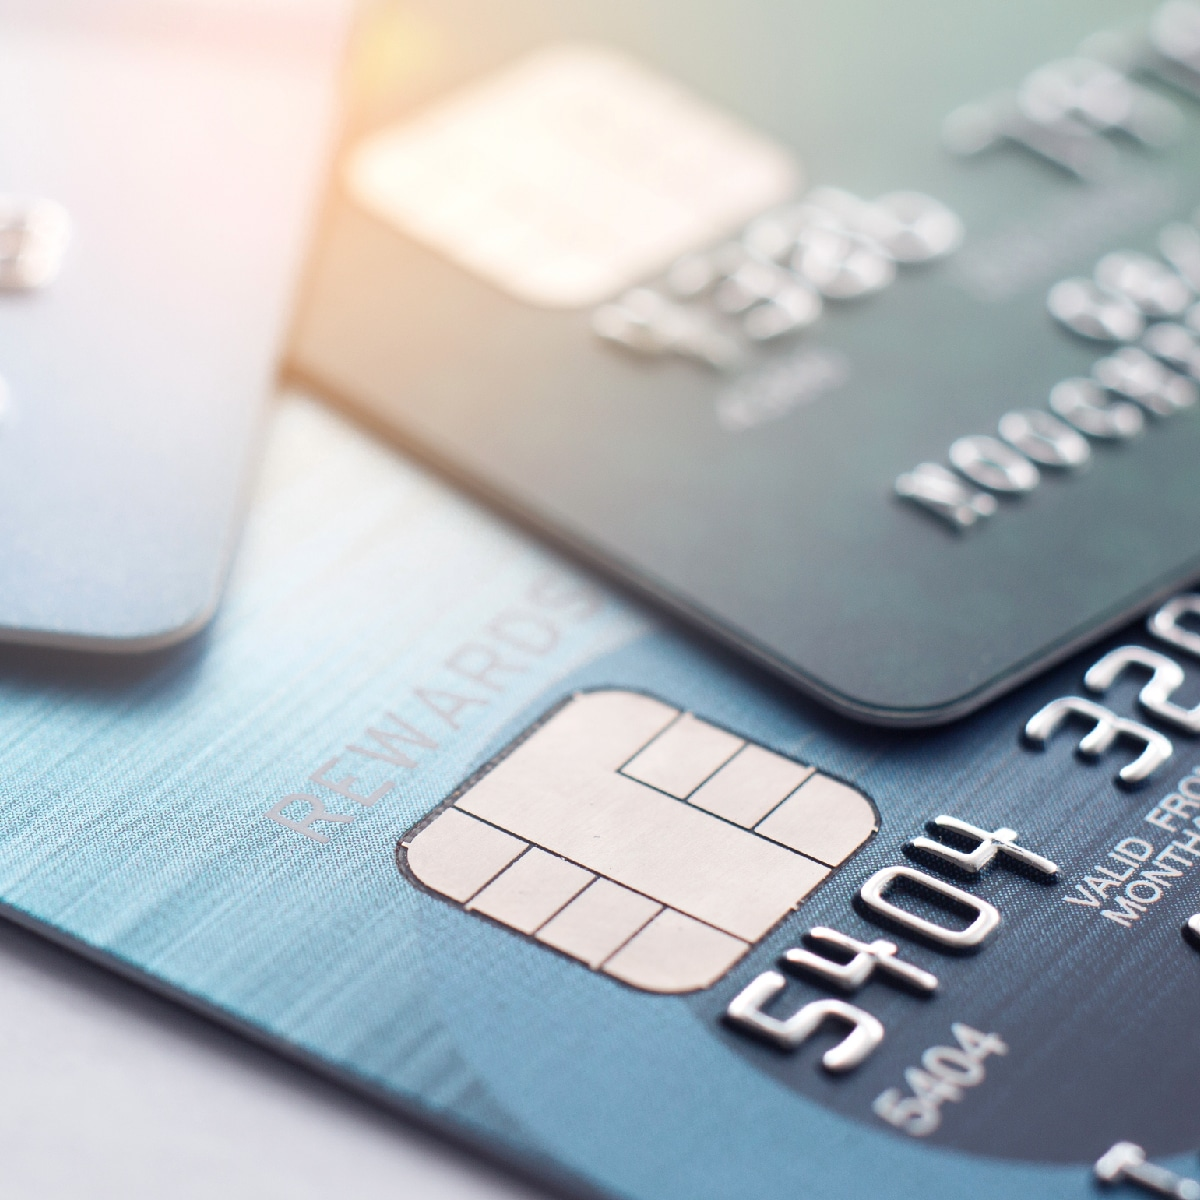 Wiring Money With Credit Card